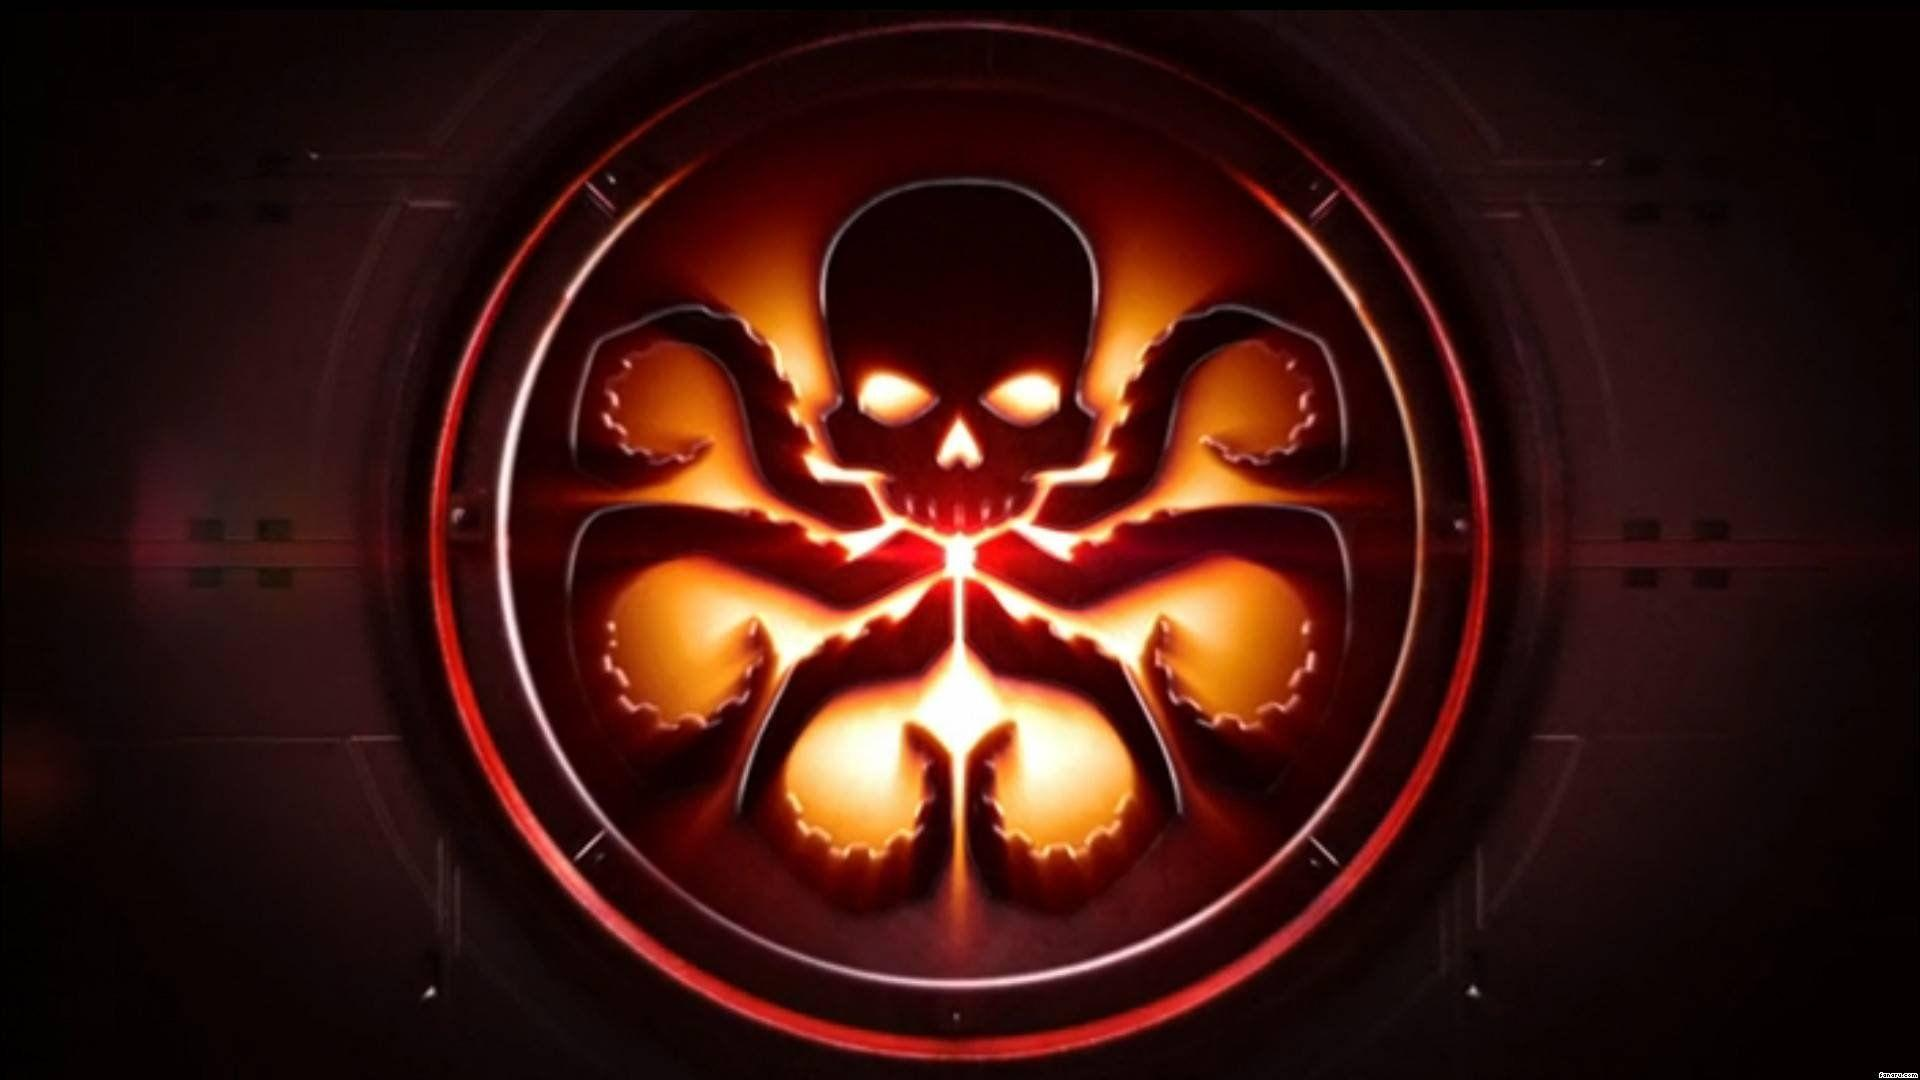 Agents Of S.H.I.E.L.D Background 7